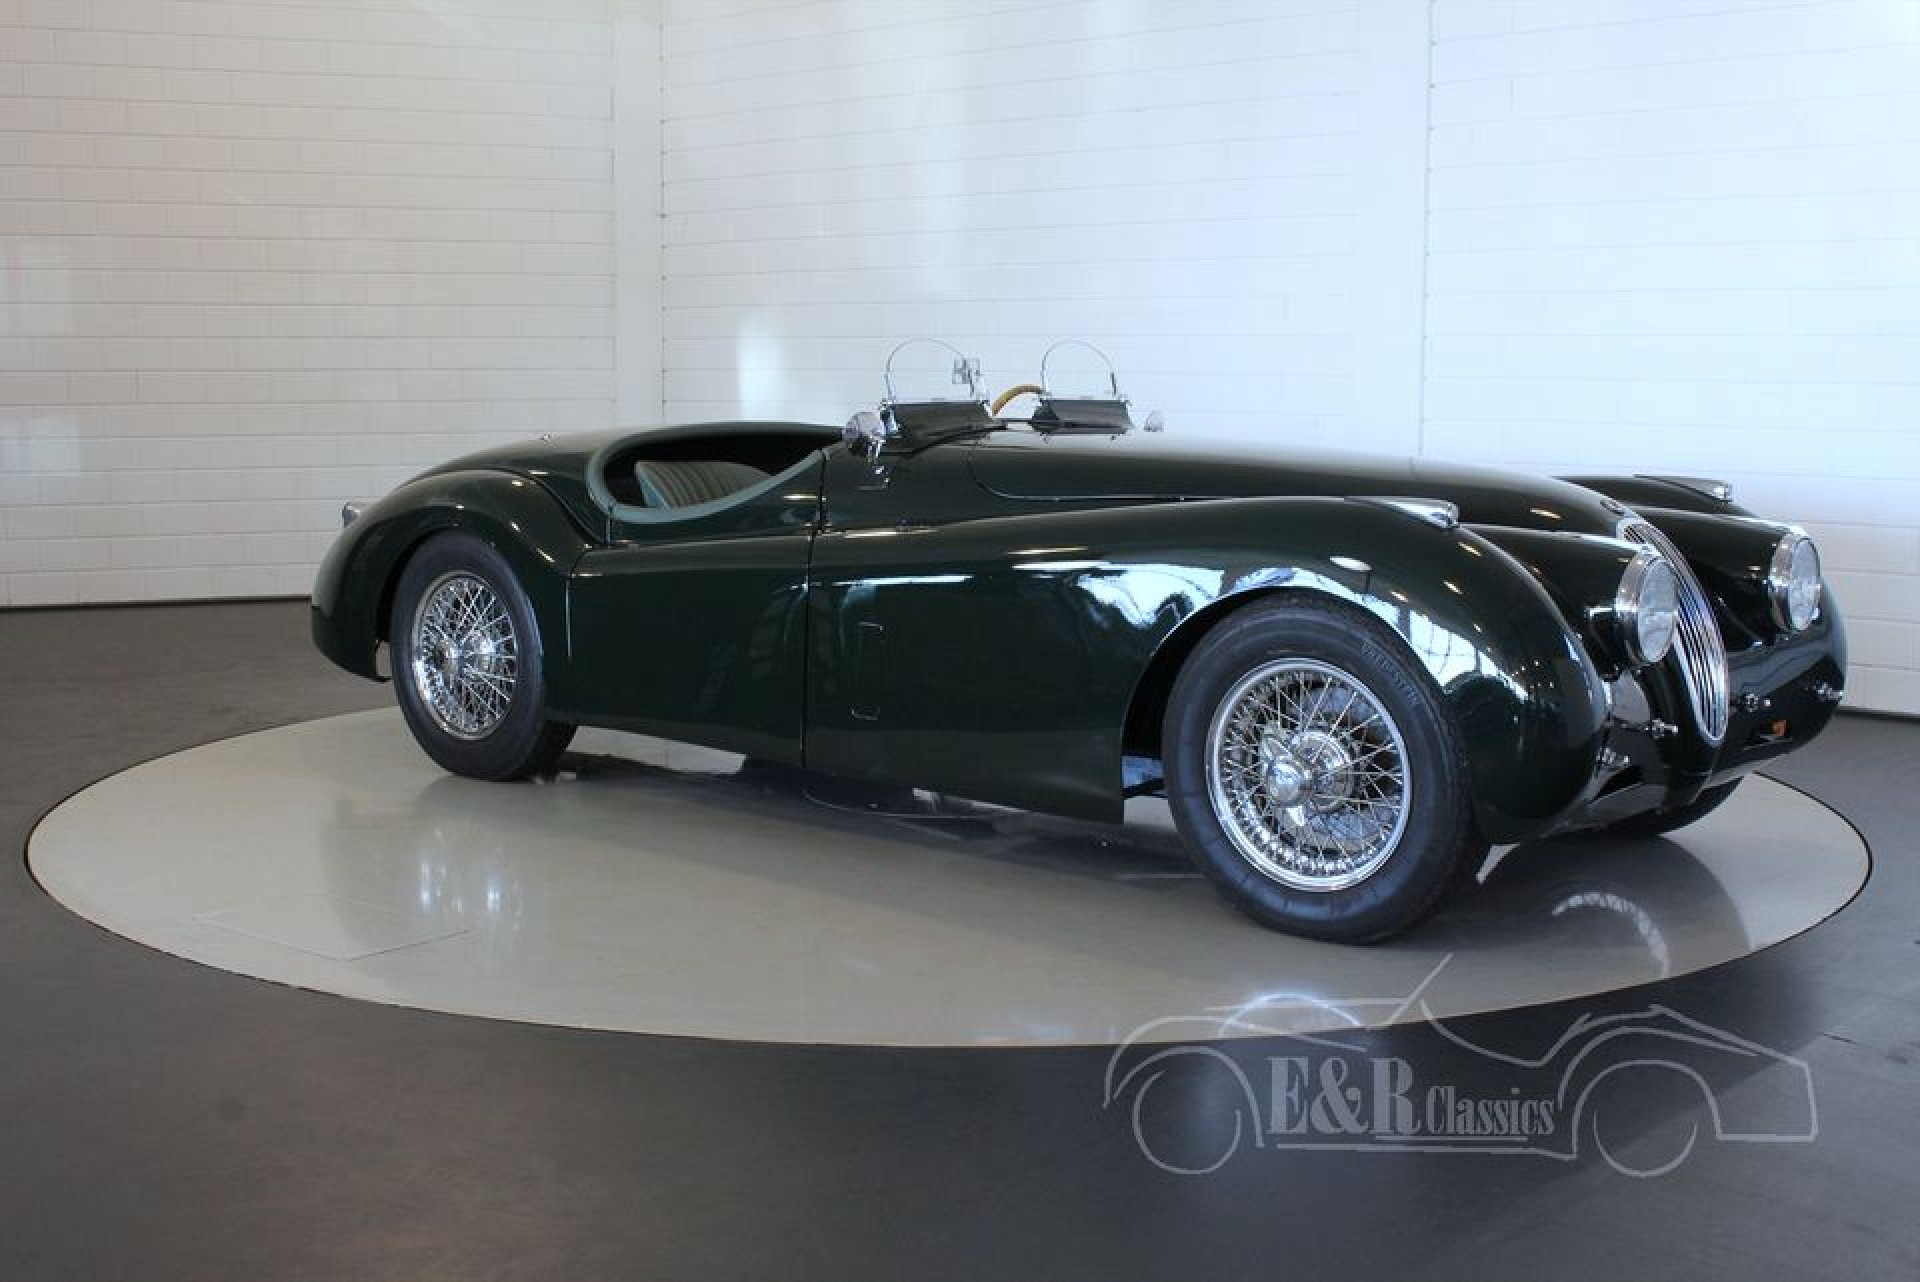 jaguar xk 120 roadster 1952 vendre erclassics. Black Bedroom Furniture Sets. Home Design Ideas